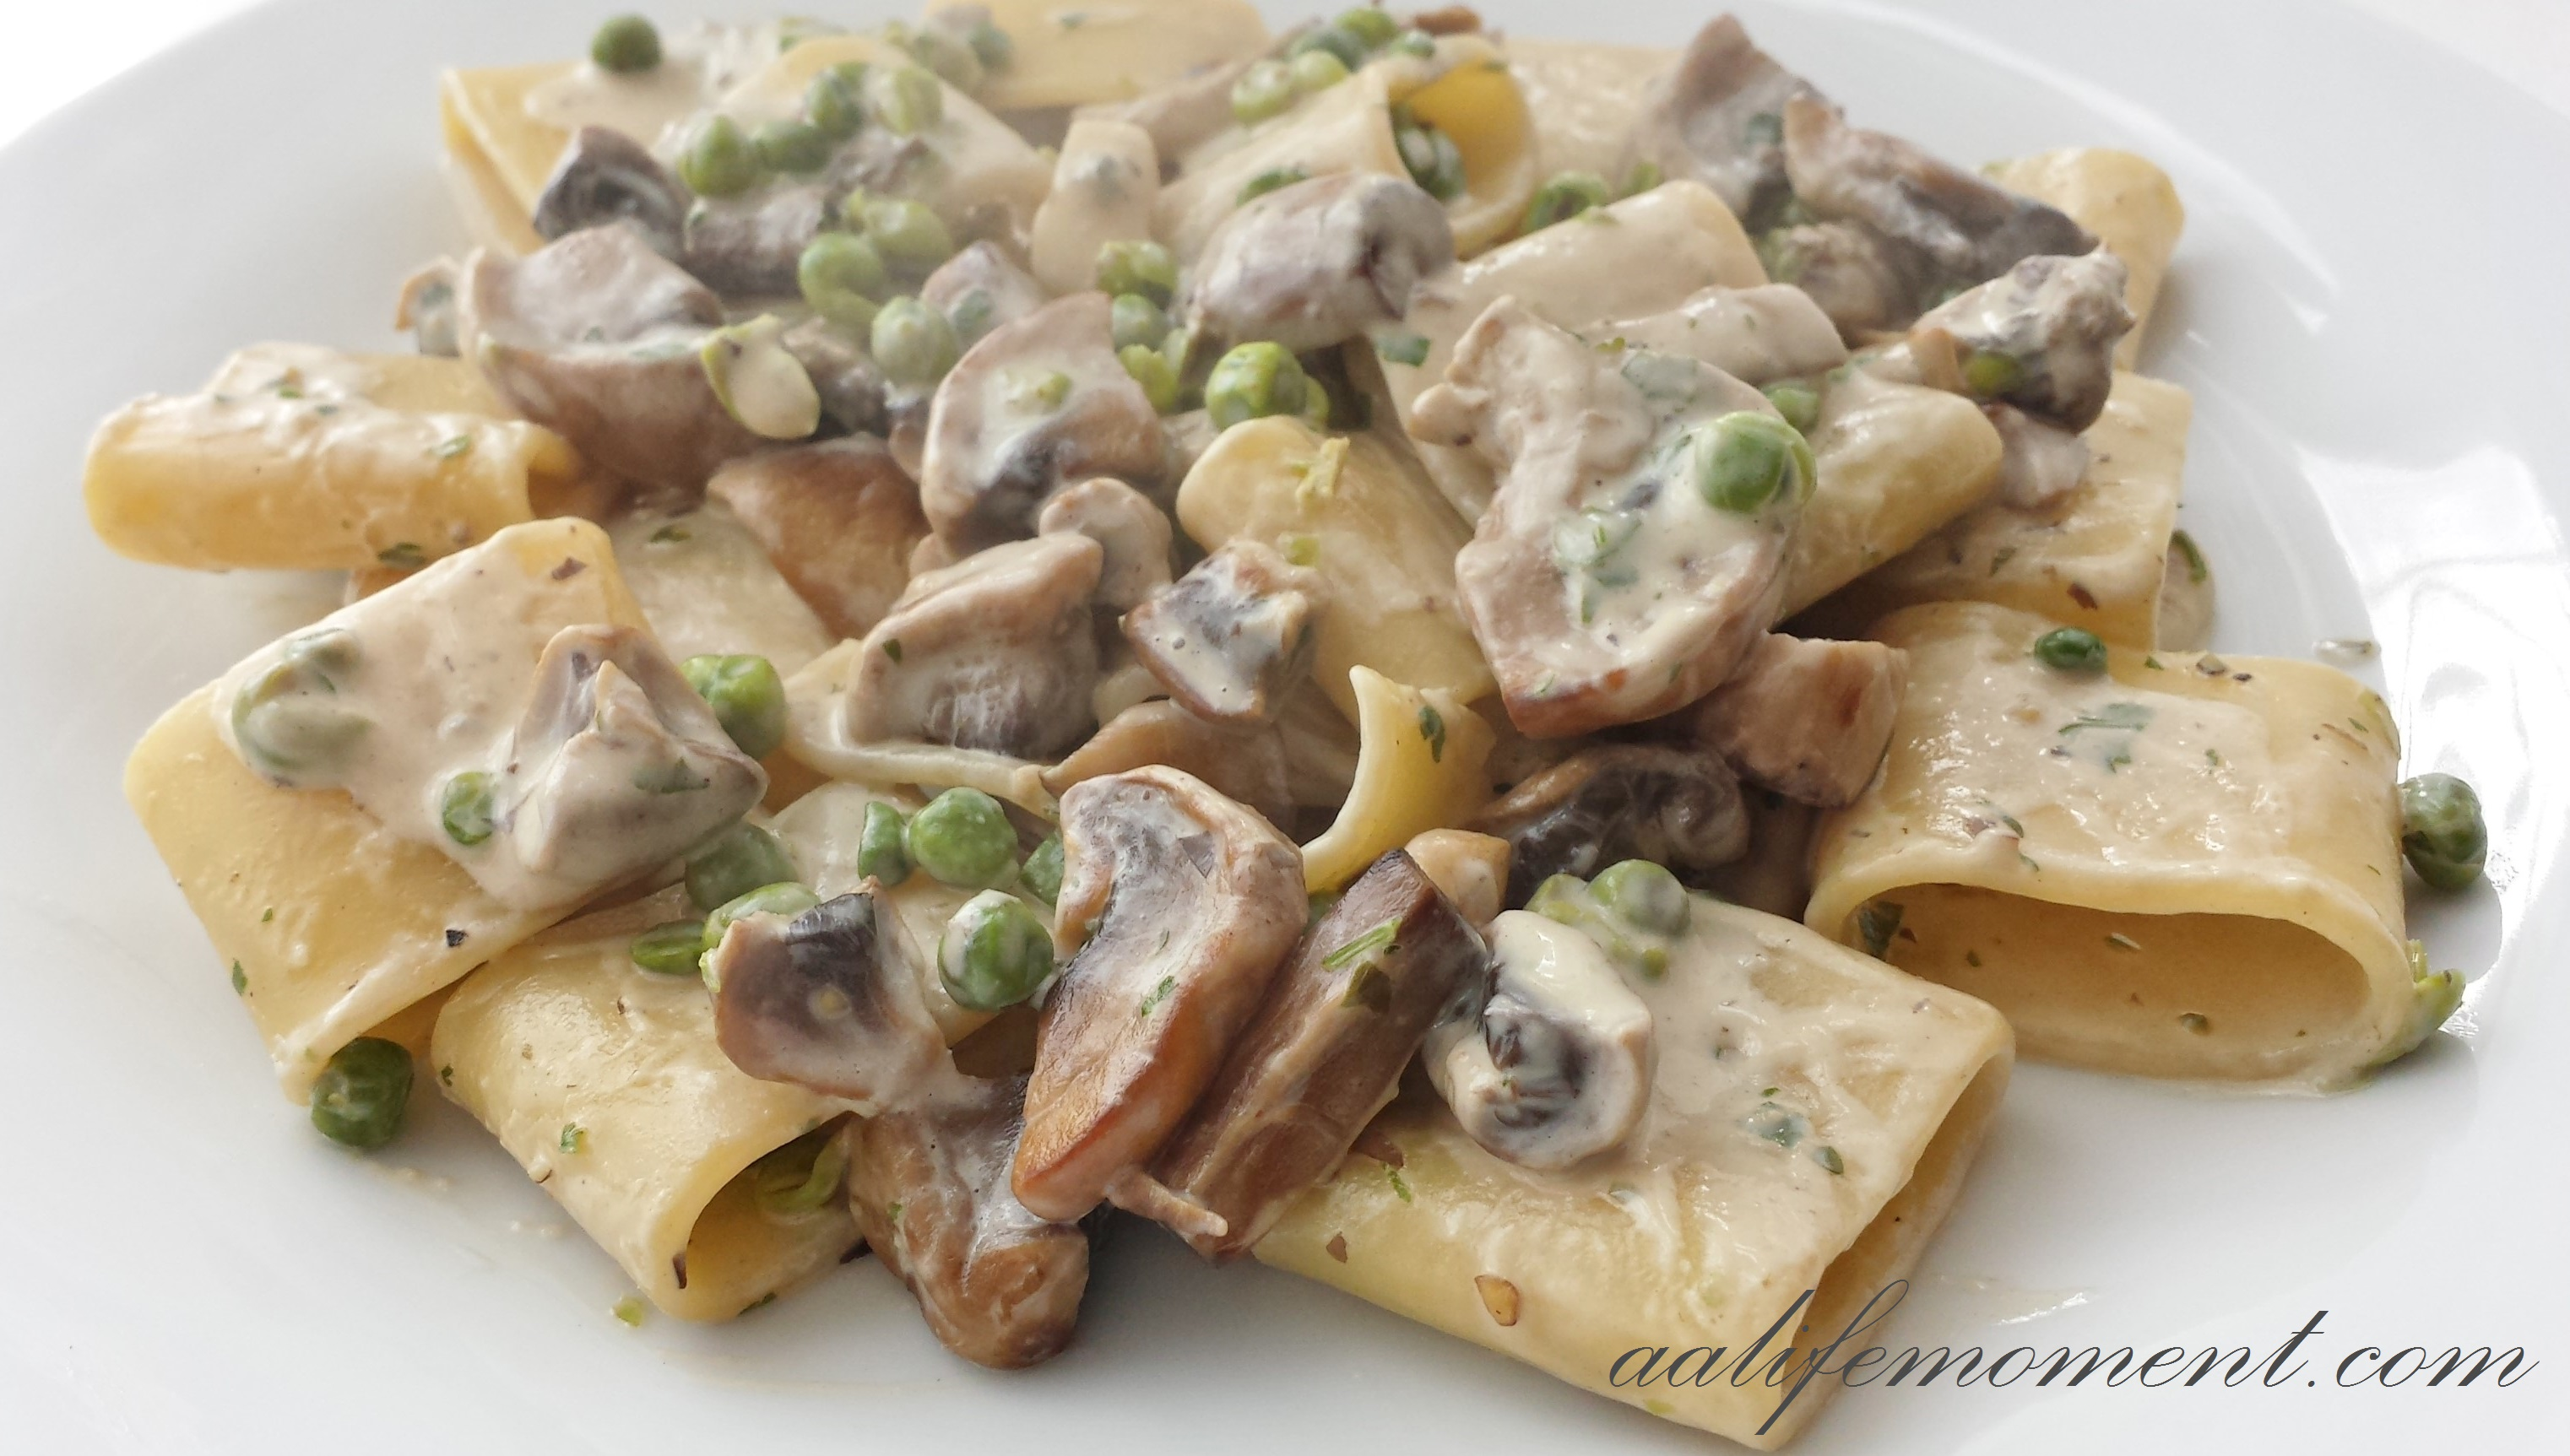 Mushrooms, peas, cheese pasta